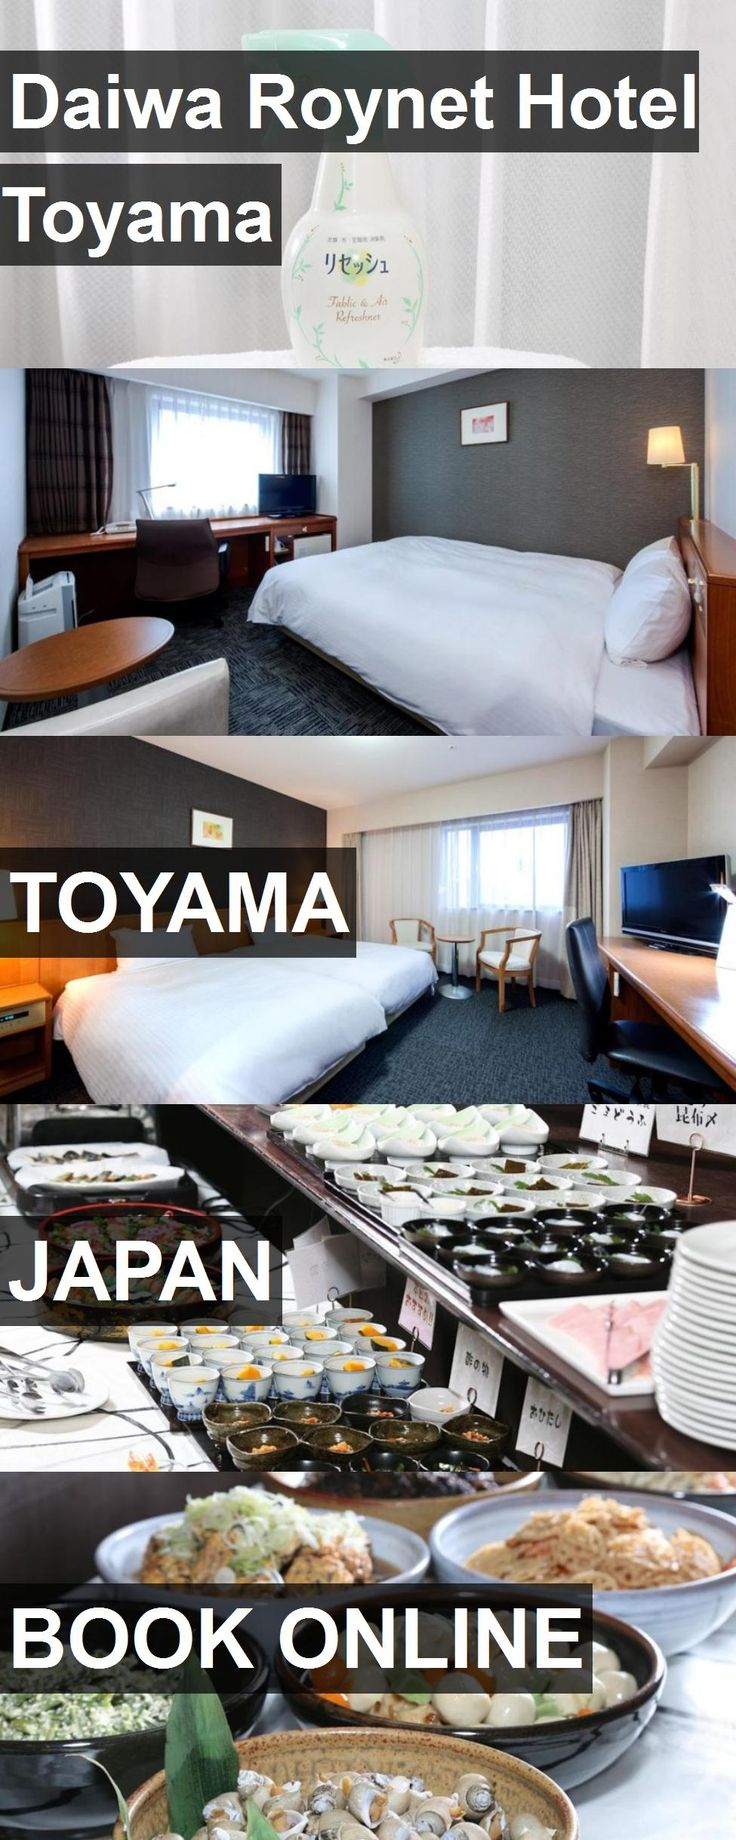 Daiwa Roynet Hotel Toyama in Toyama, Japan. For more information, photos, reviews and best prices please follow the link. #Japan #Toyama #travel #vacation #hotel